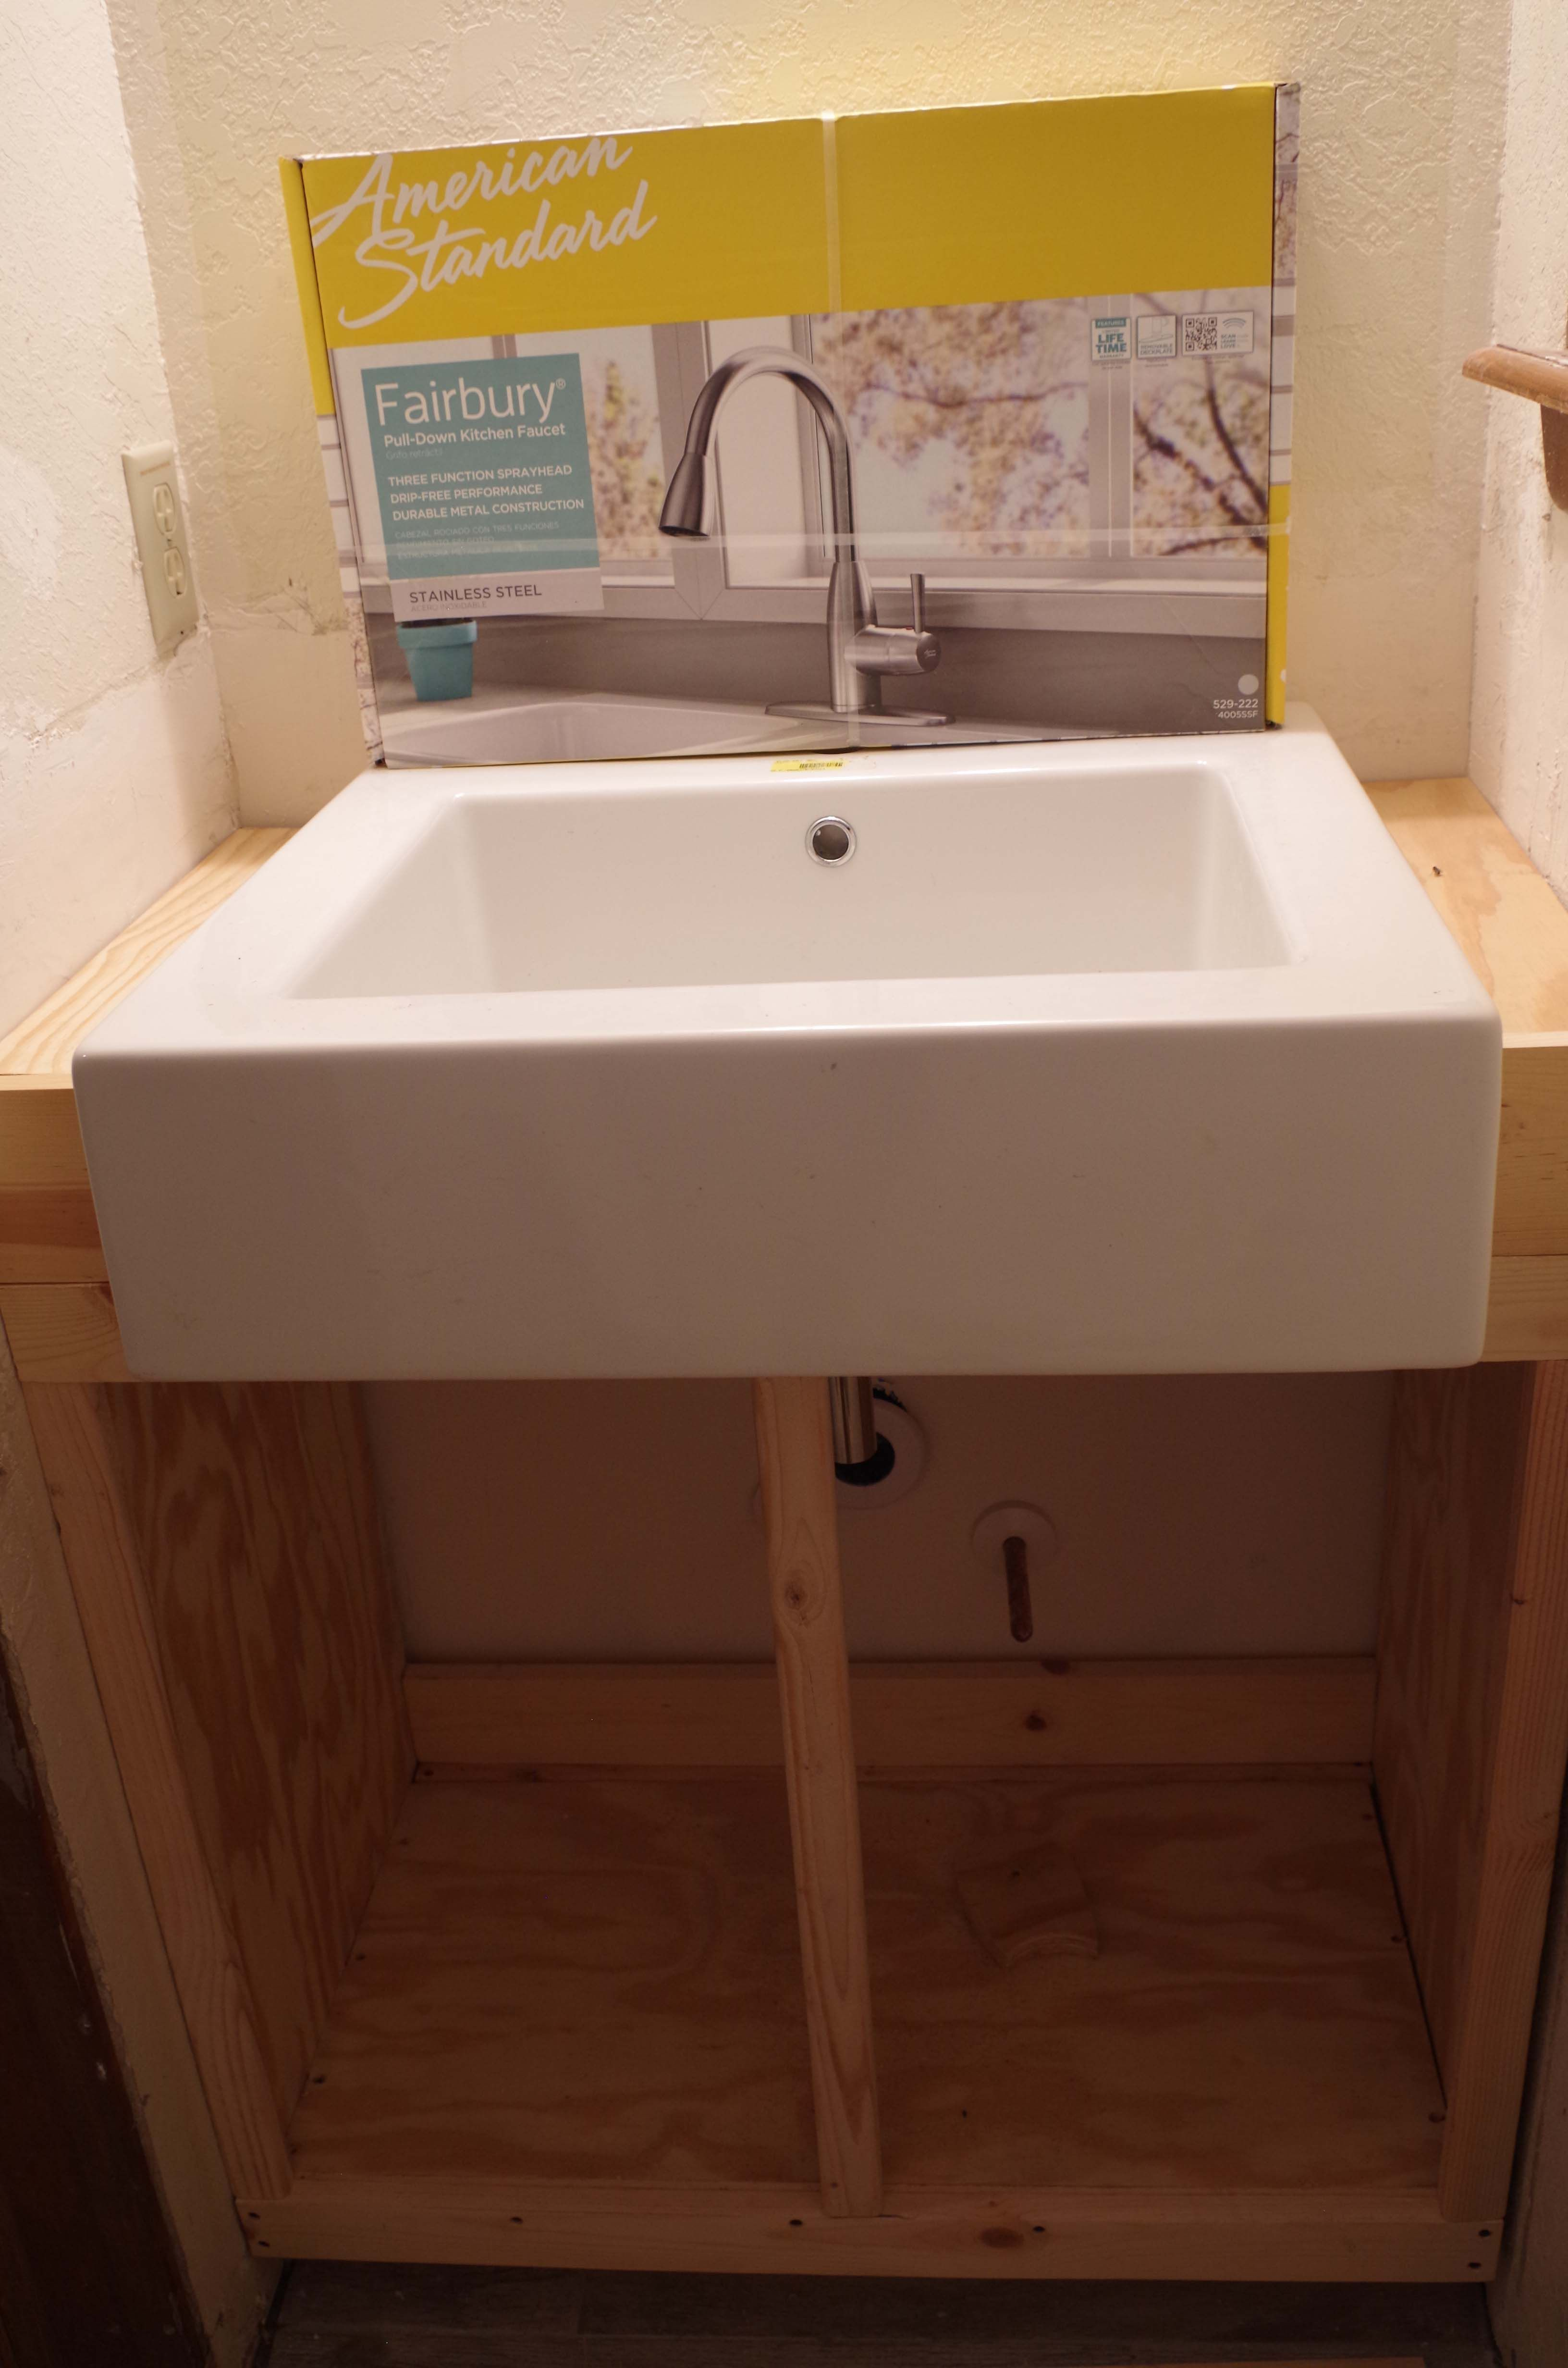 Custom Cabinet For Small Apron Sink In Washroom. Used Youtube For Cabinet  Modifications. Have